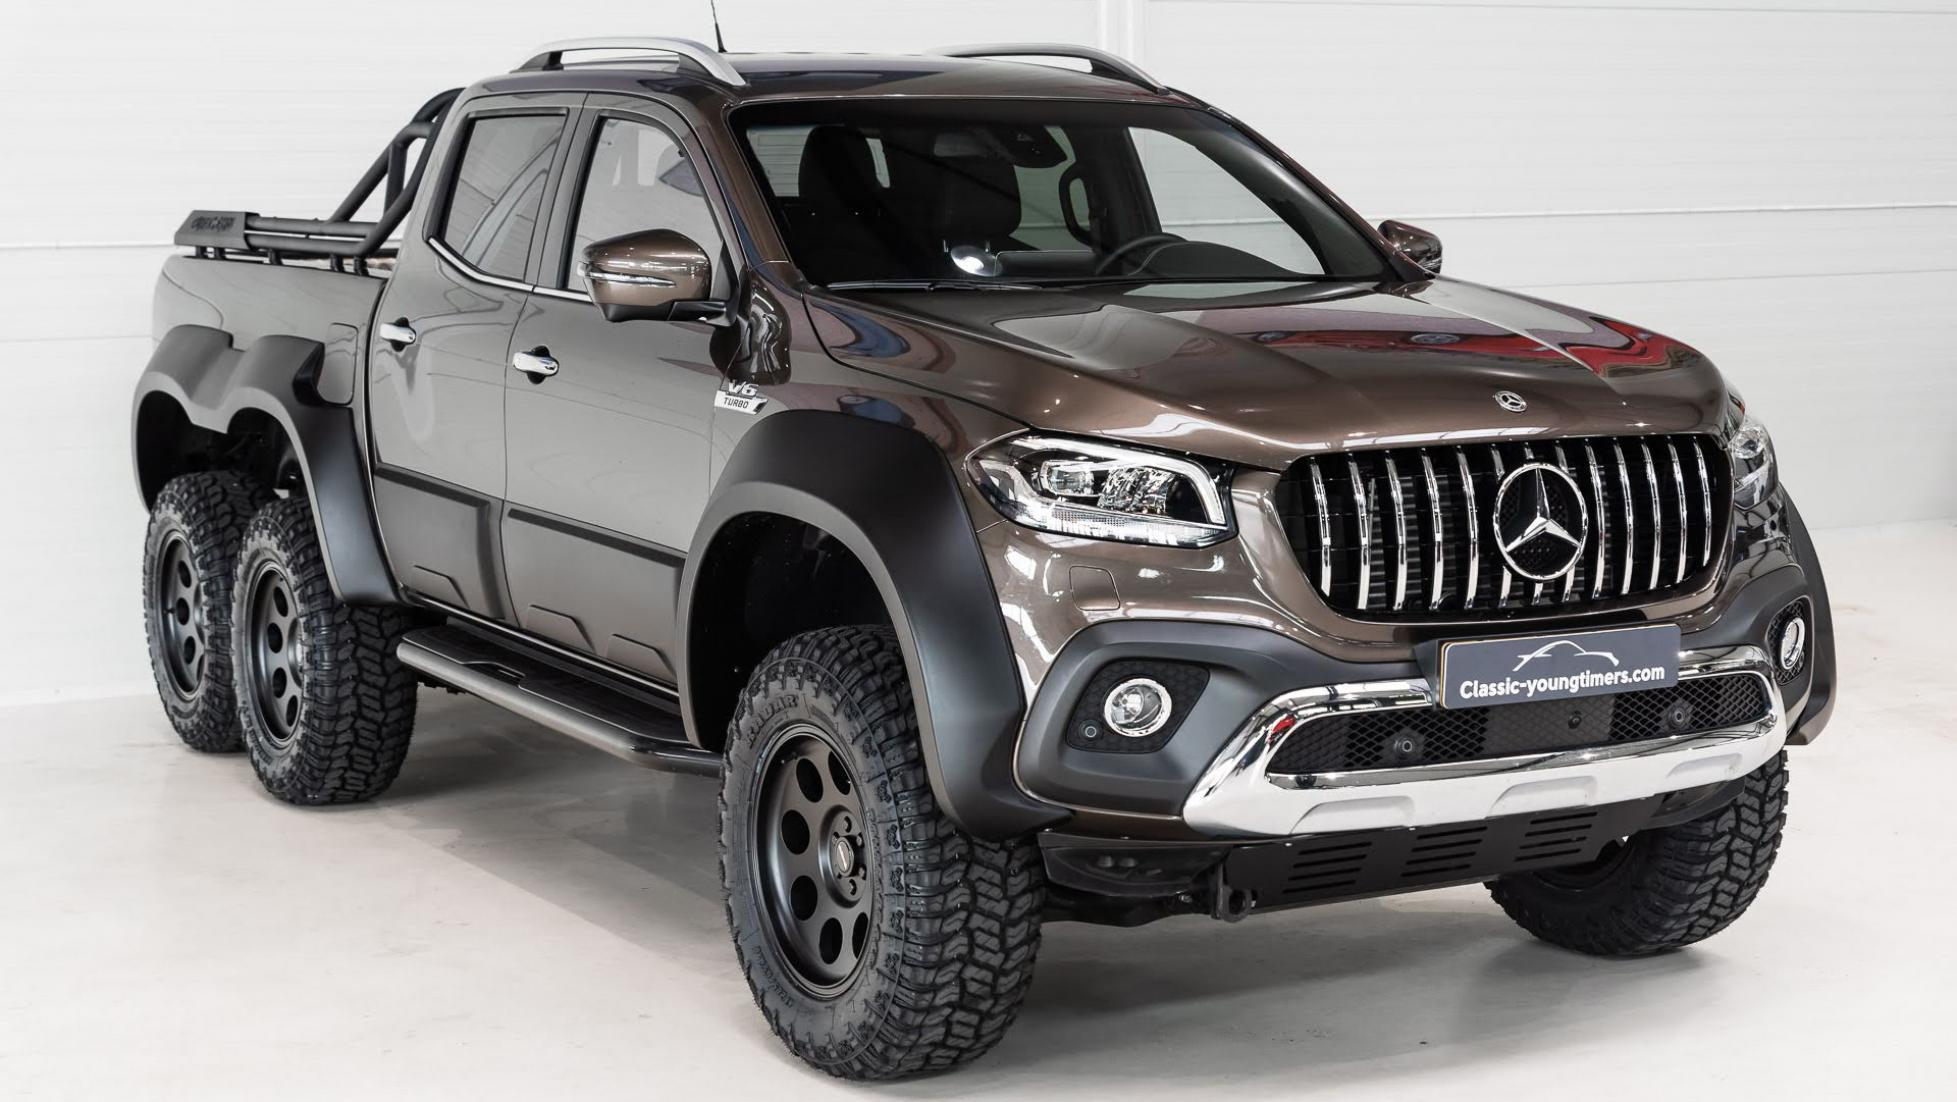 An angled front view of the Mercedes-Benz X-Class Pickup truck